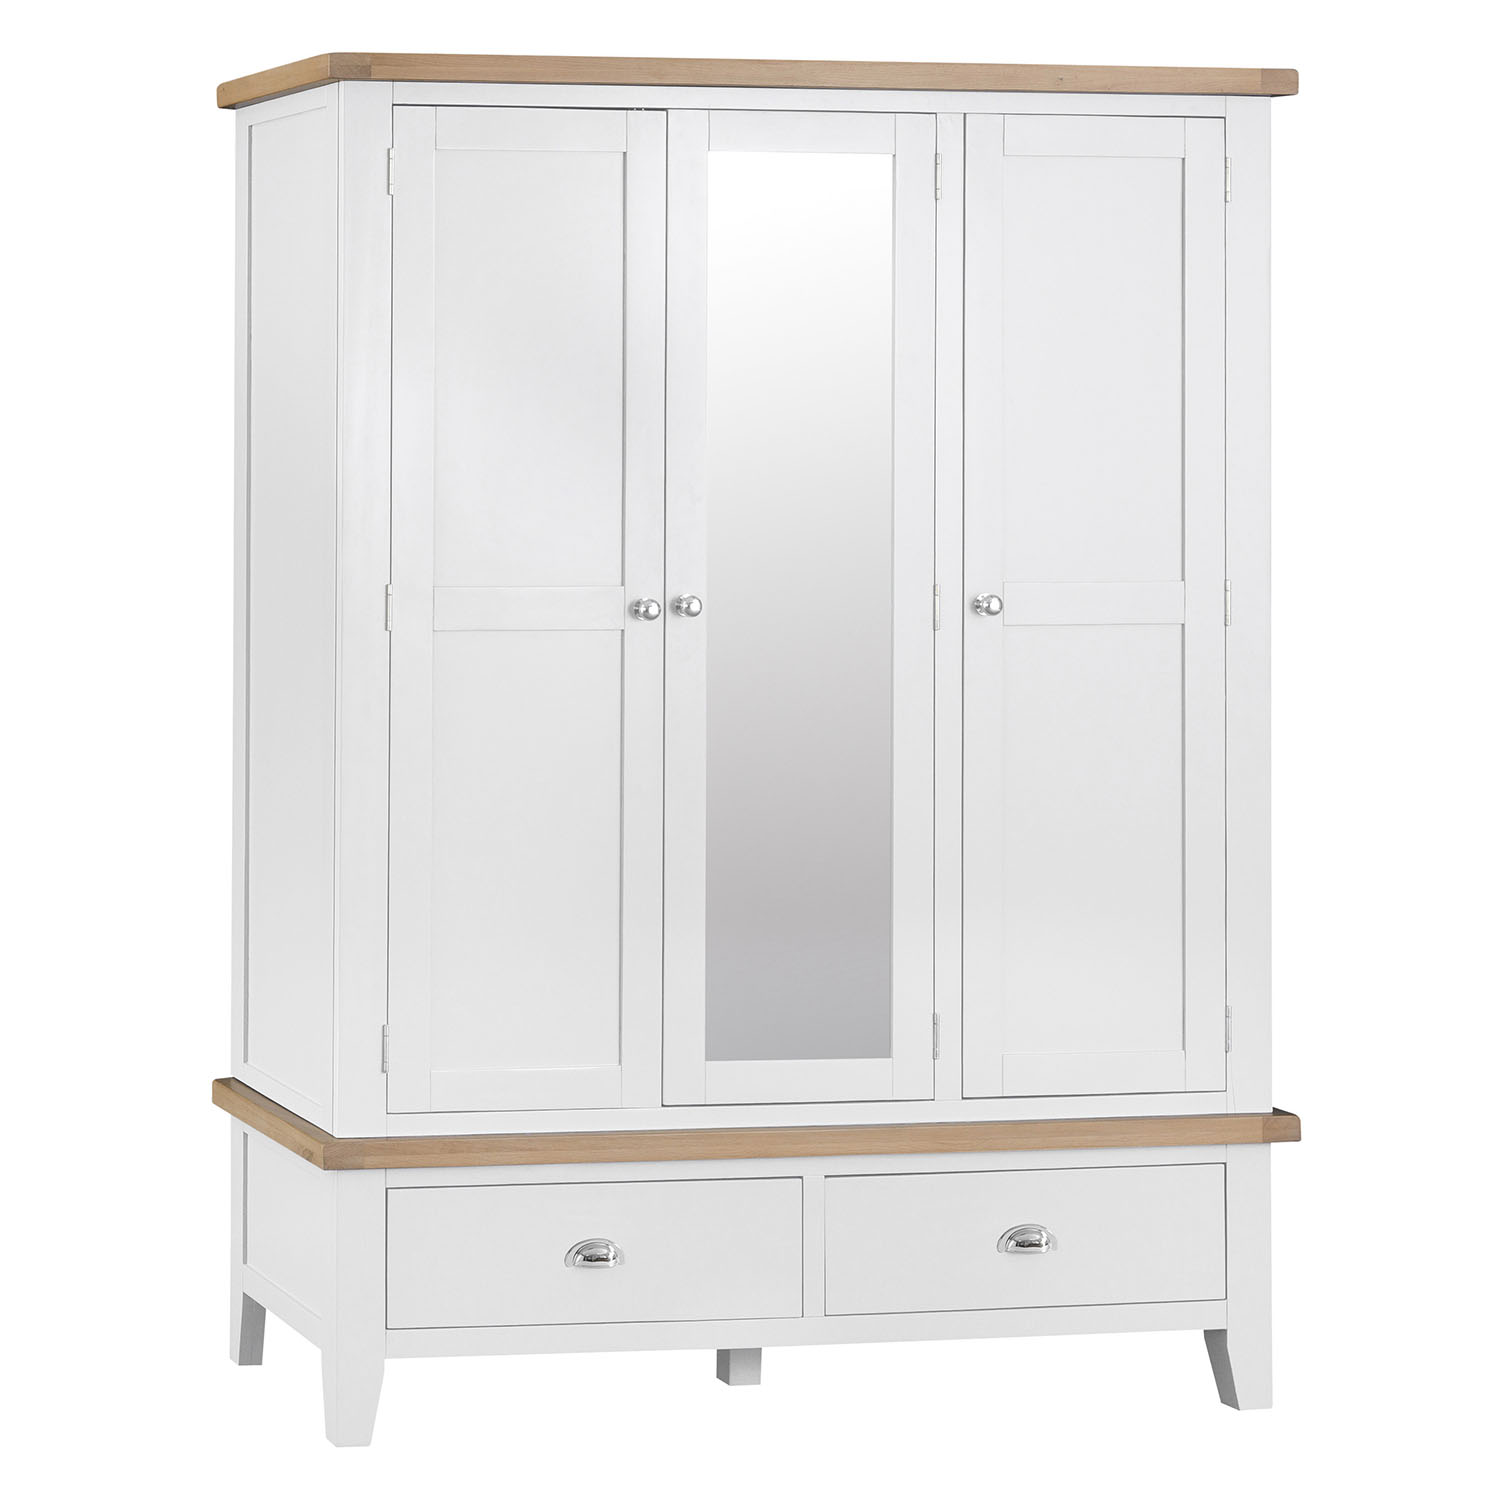 Henley White Large 3 Door Wardrobe